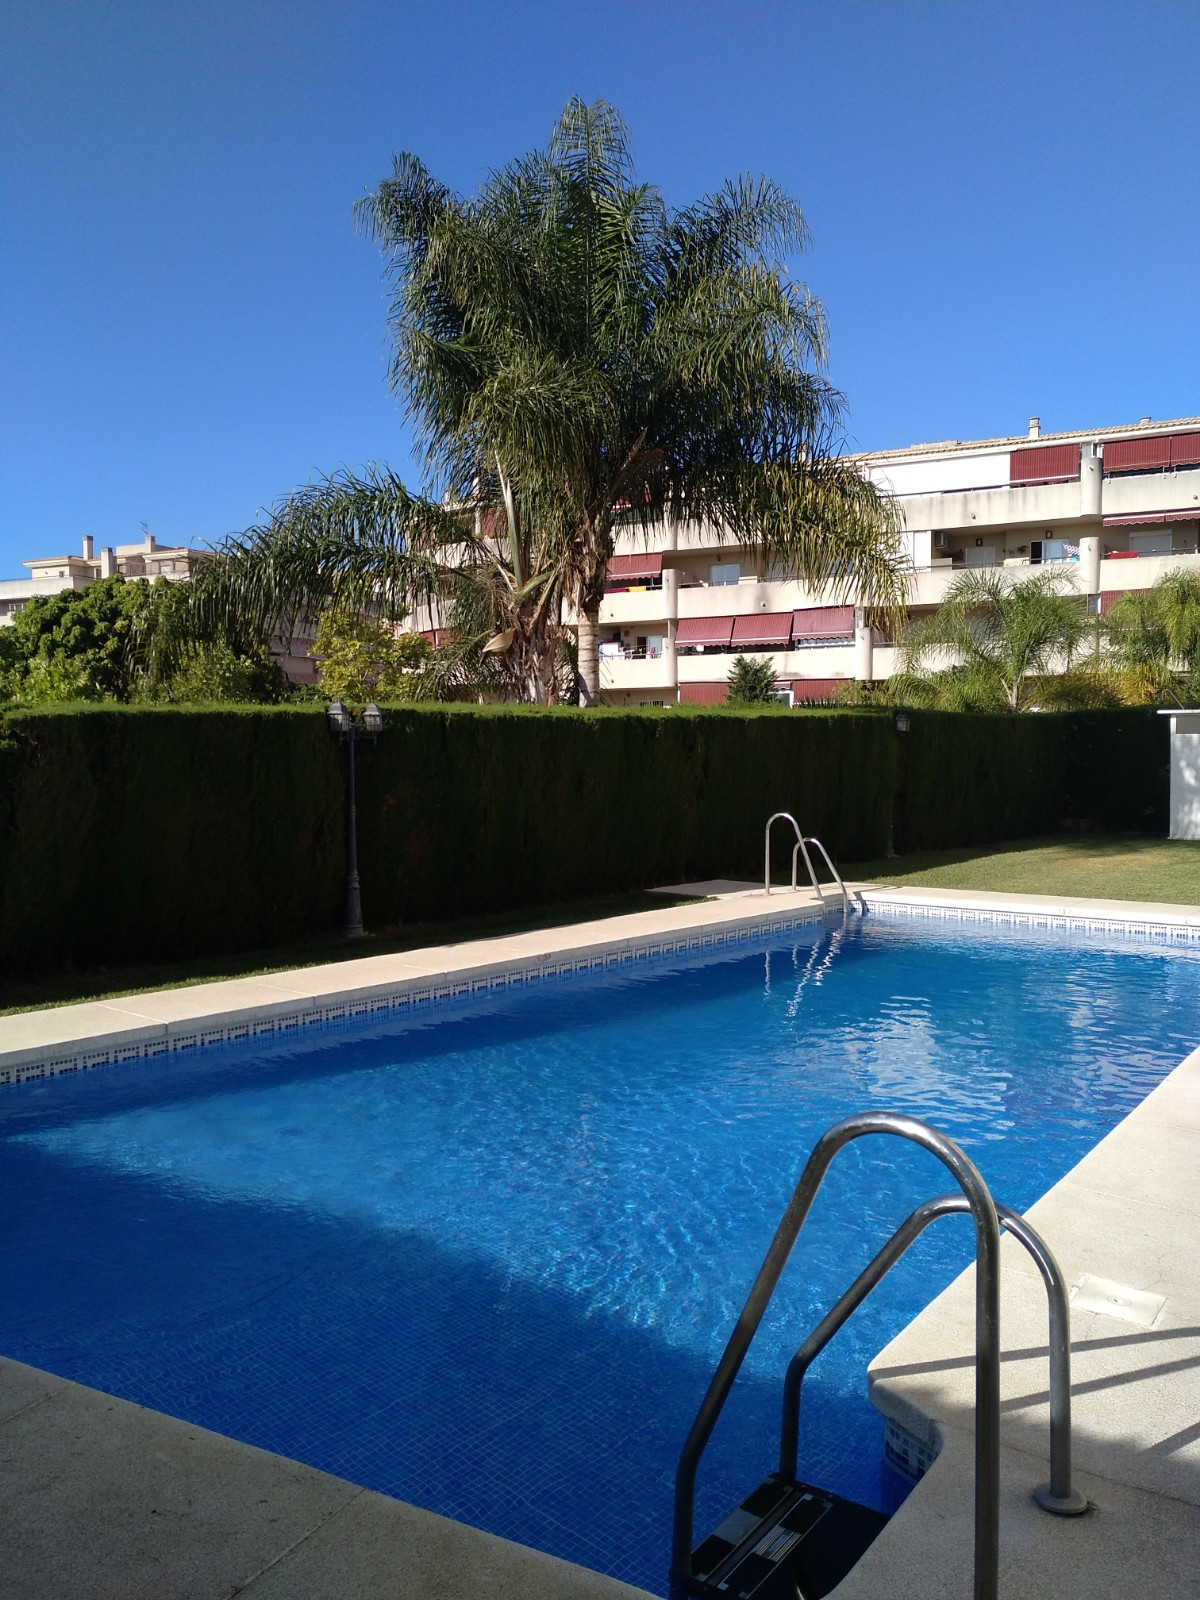 Beautiful apartment in Las Lagunas de Mijas, with very good location close to all services, public t,Spain